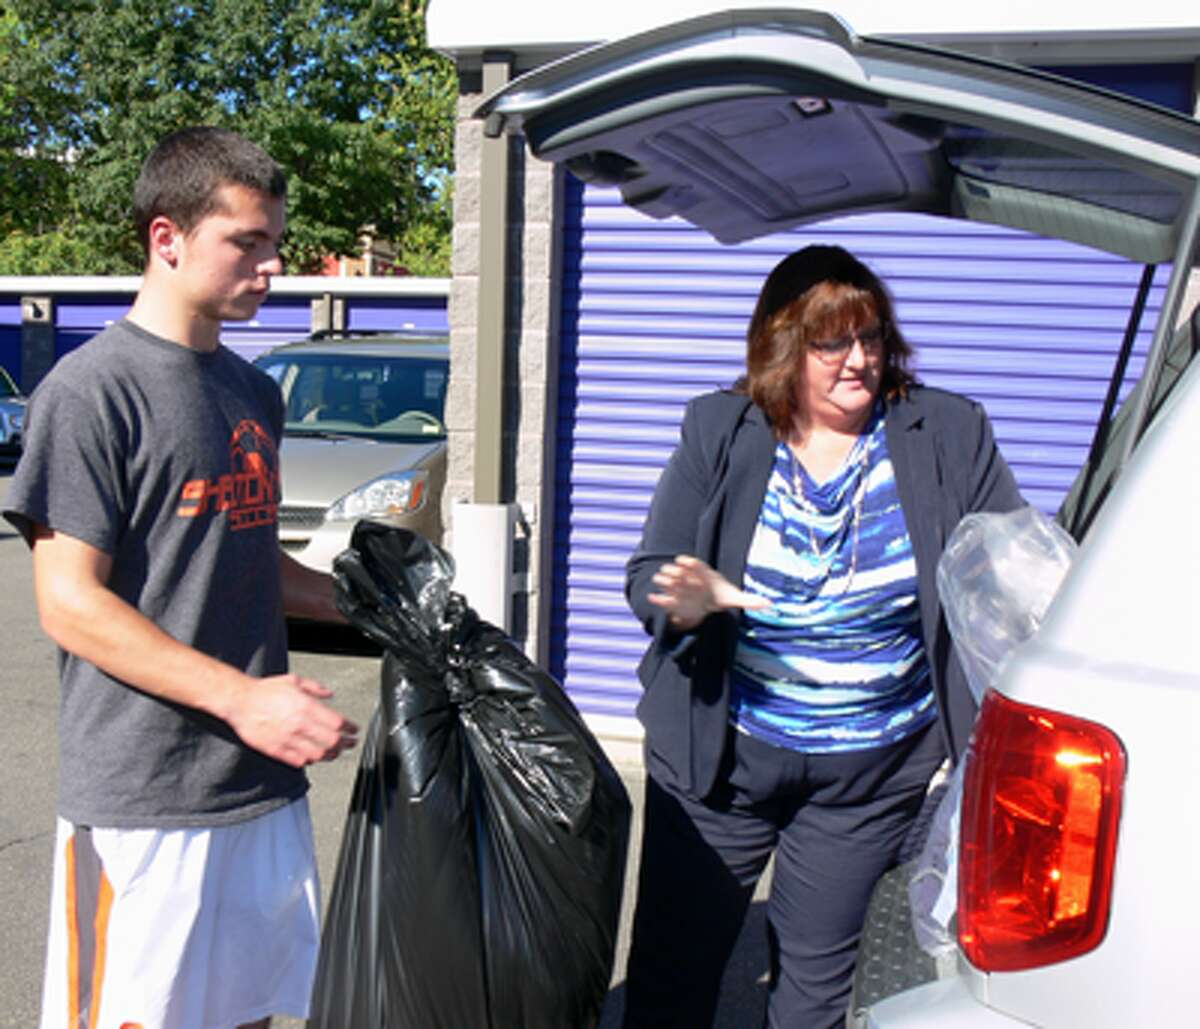 A team member helps out with a last-minute donation before the truck arrives to take all the items away.